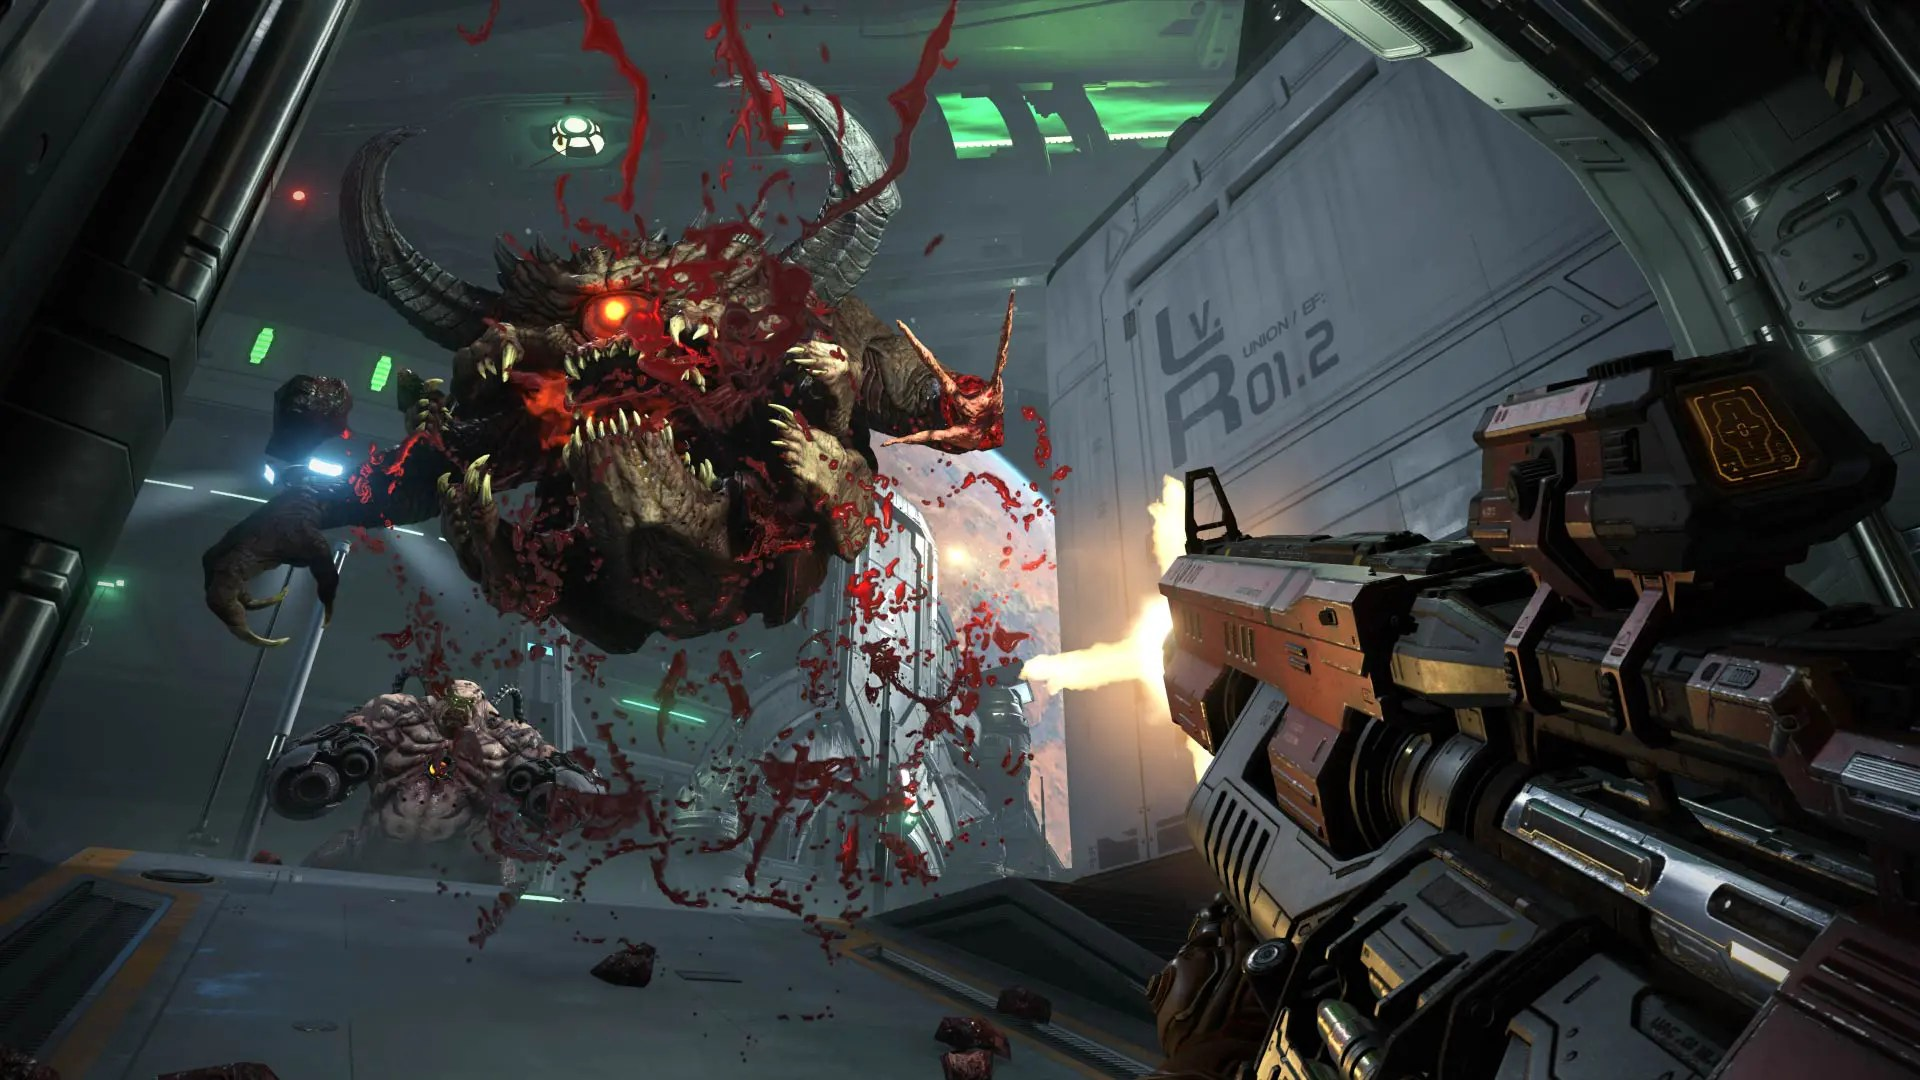 A bloody creature from DOOM